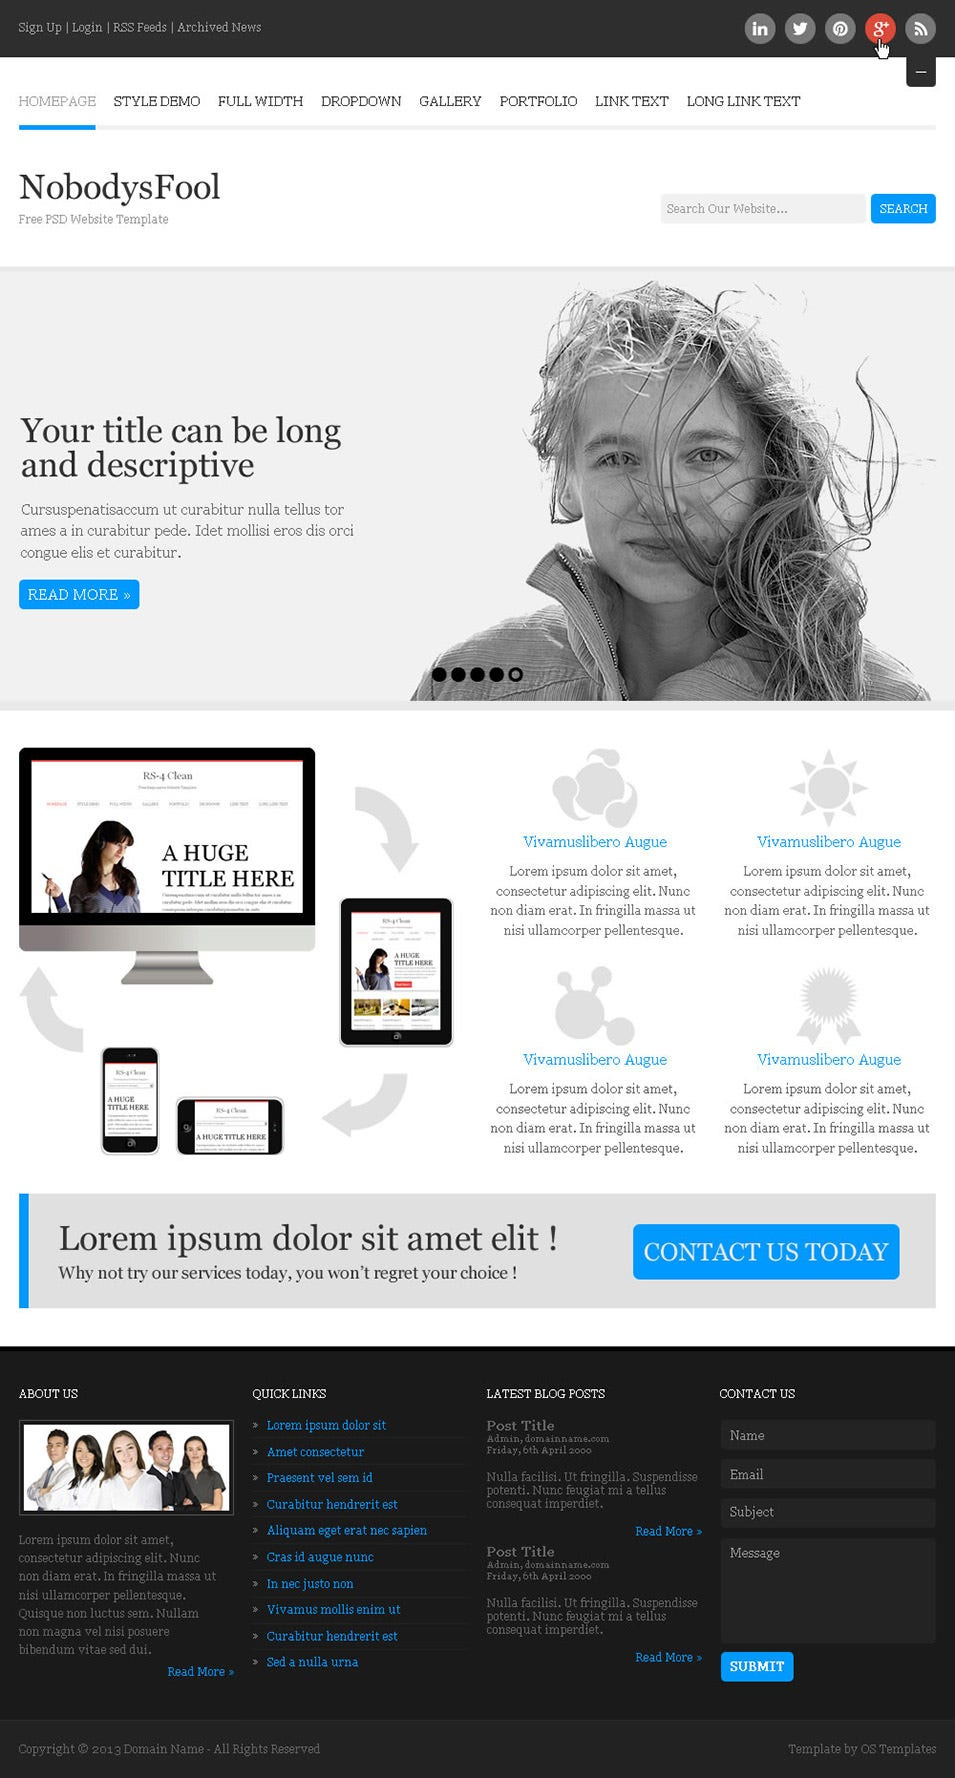 nobodysfool free psd website template